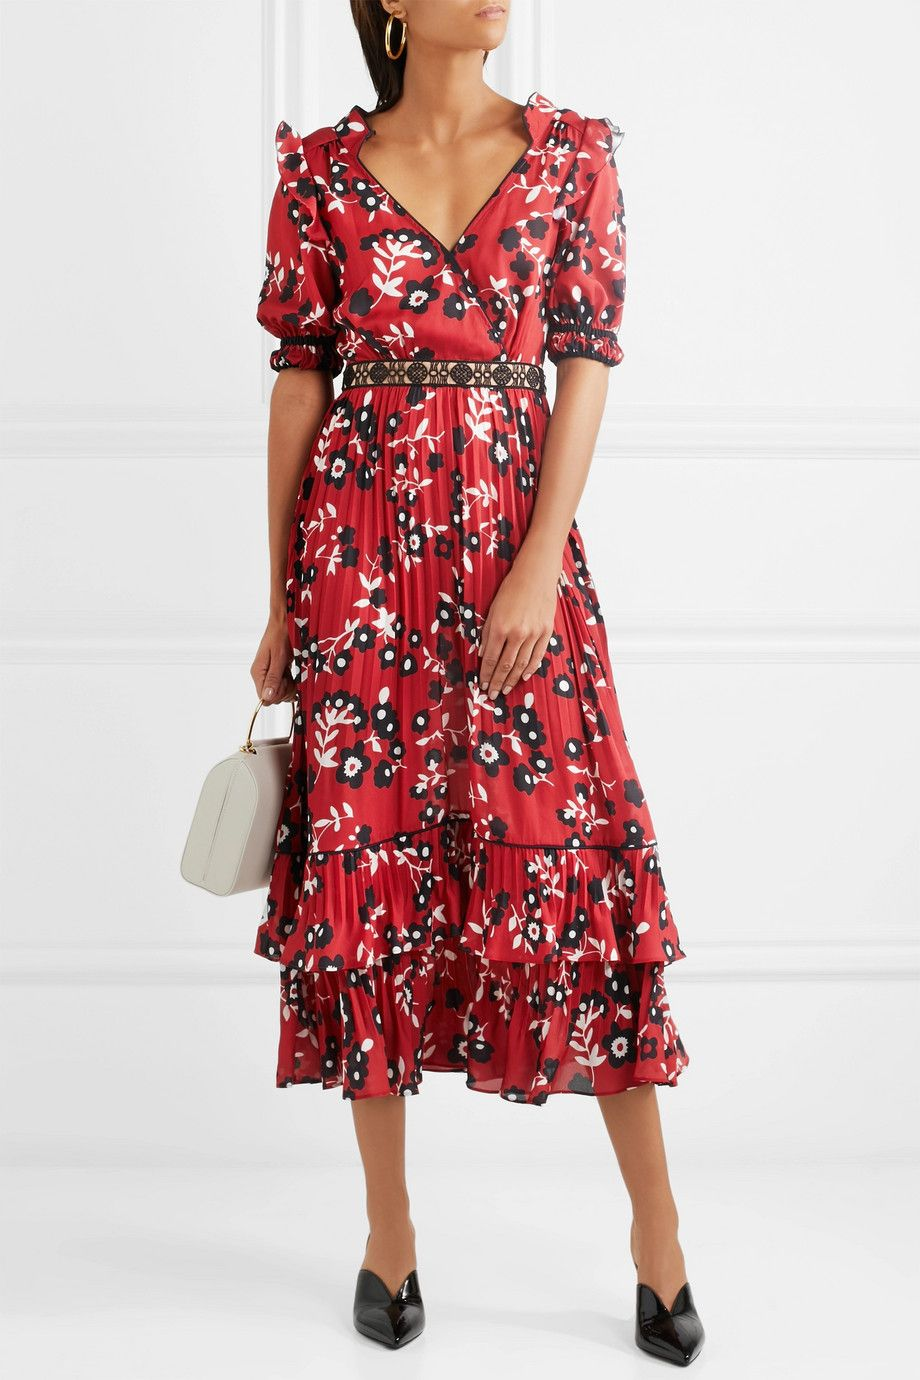 Self-Portrait - Guipure lace-trimmed floral-print crepe de chine dress